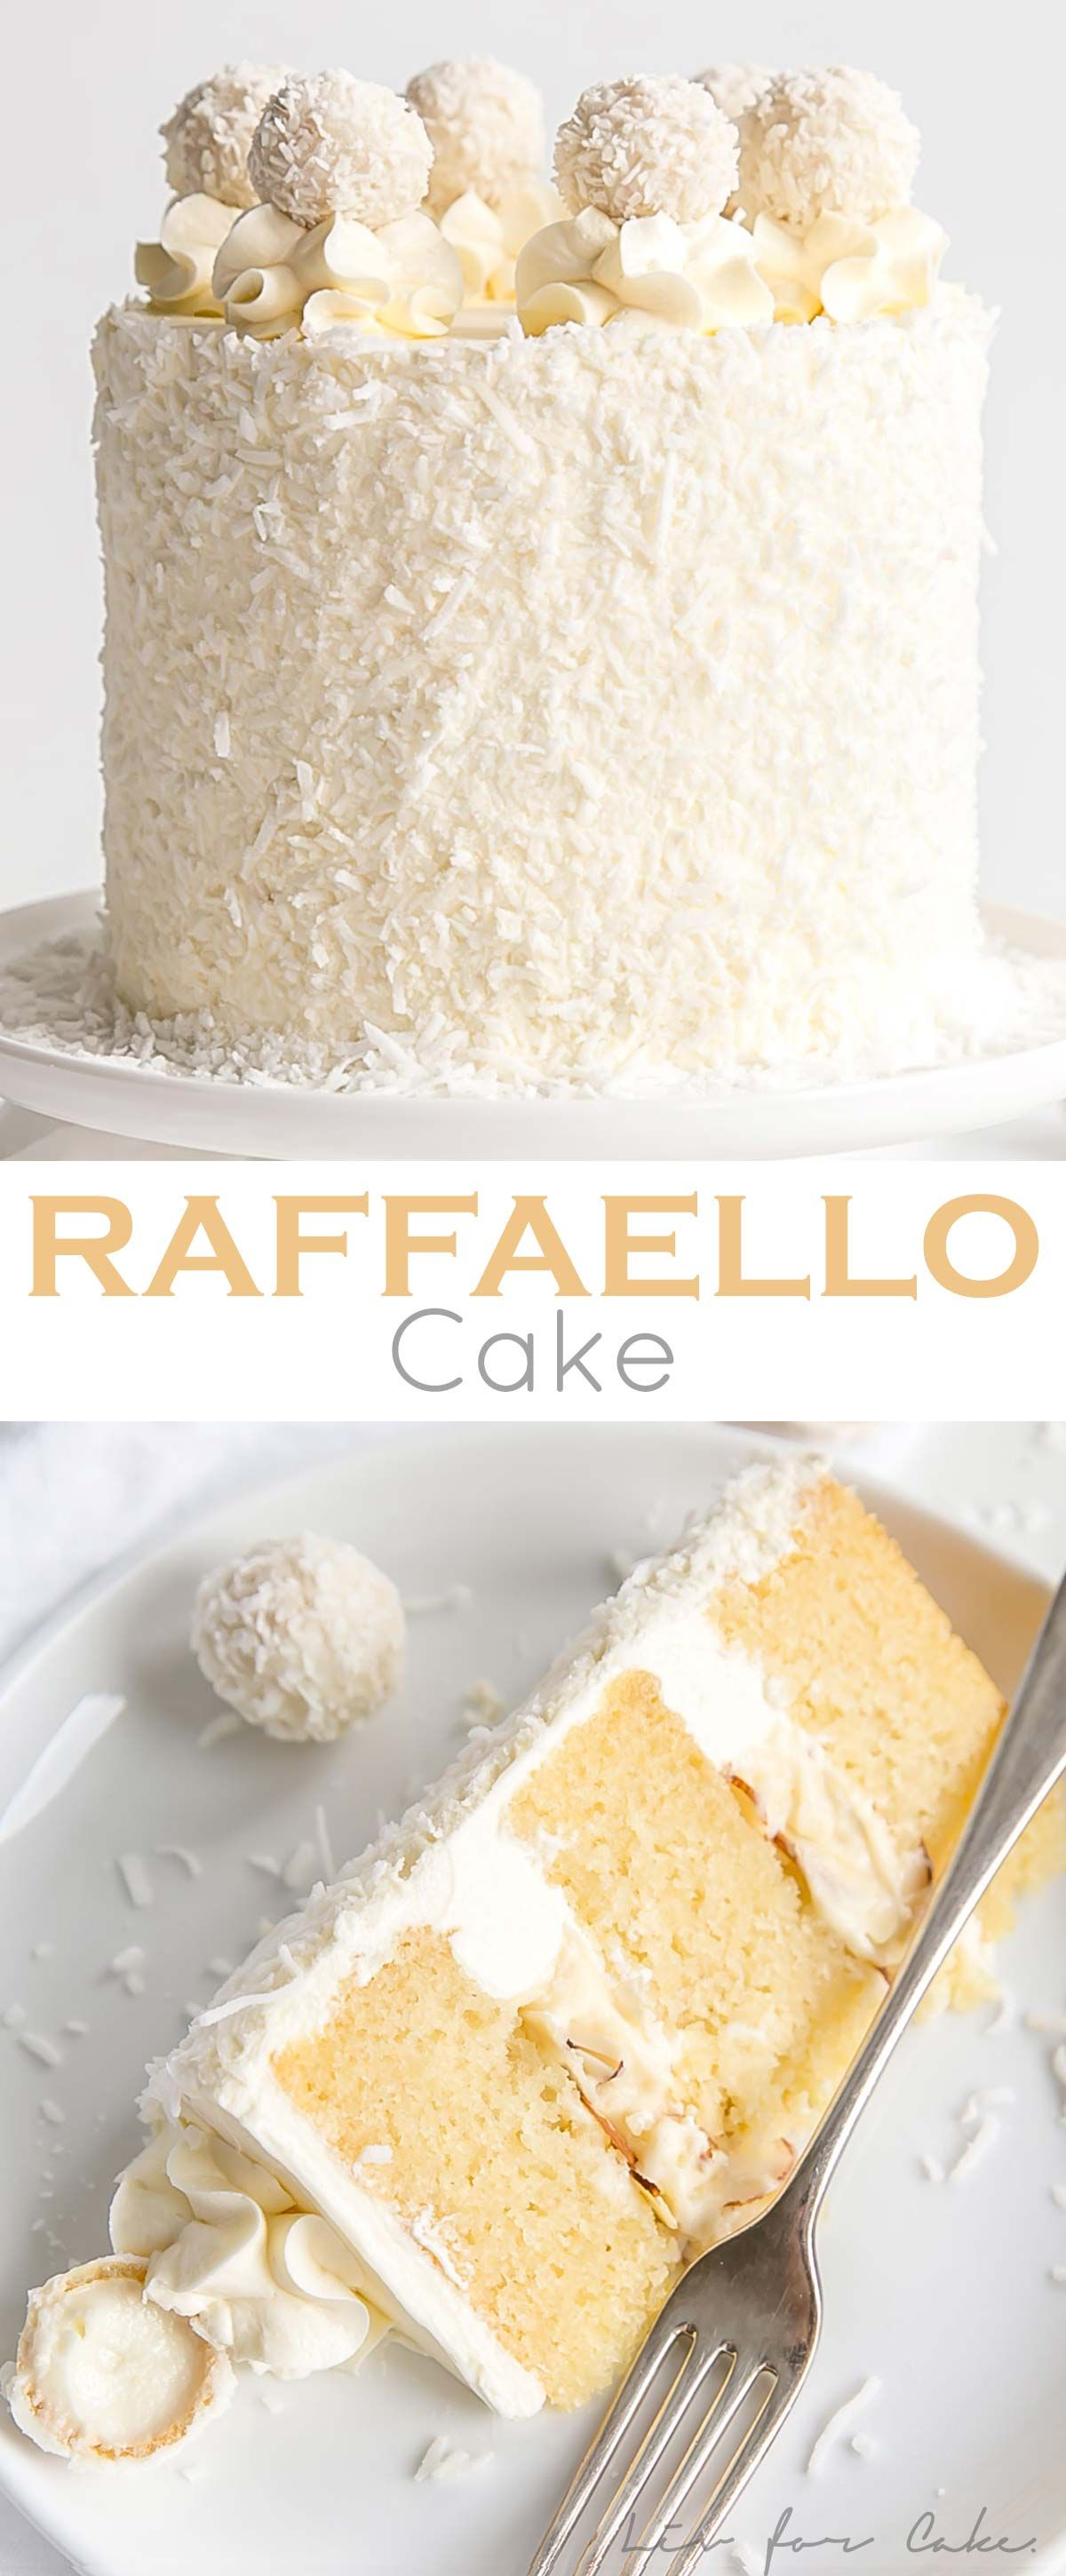 This Raffaello Cake Is A Coconut Lover S Dream Layers Of Moist And Tender Almond Cake Coconut Custard And Coconut Swiss Meringue But Almond Cakes Yummy Cakes